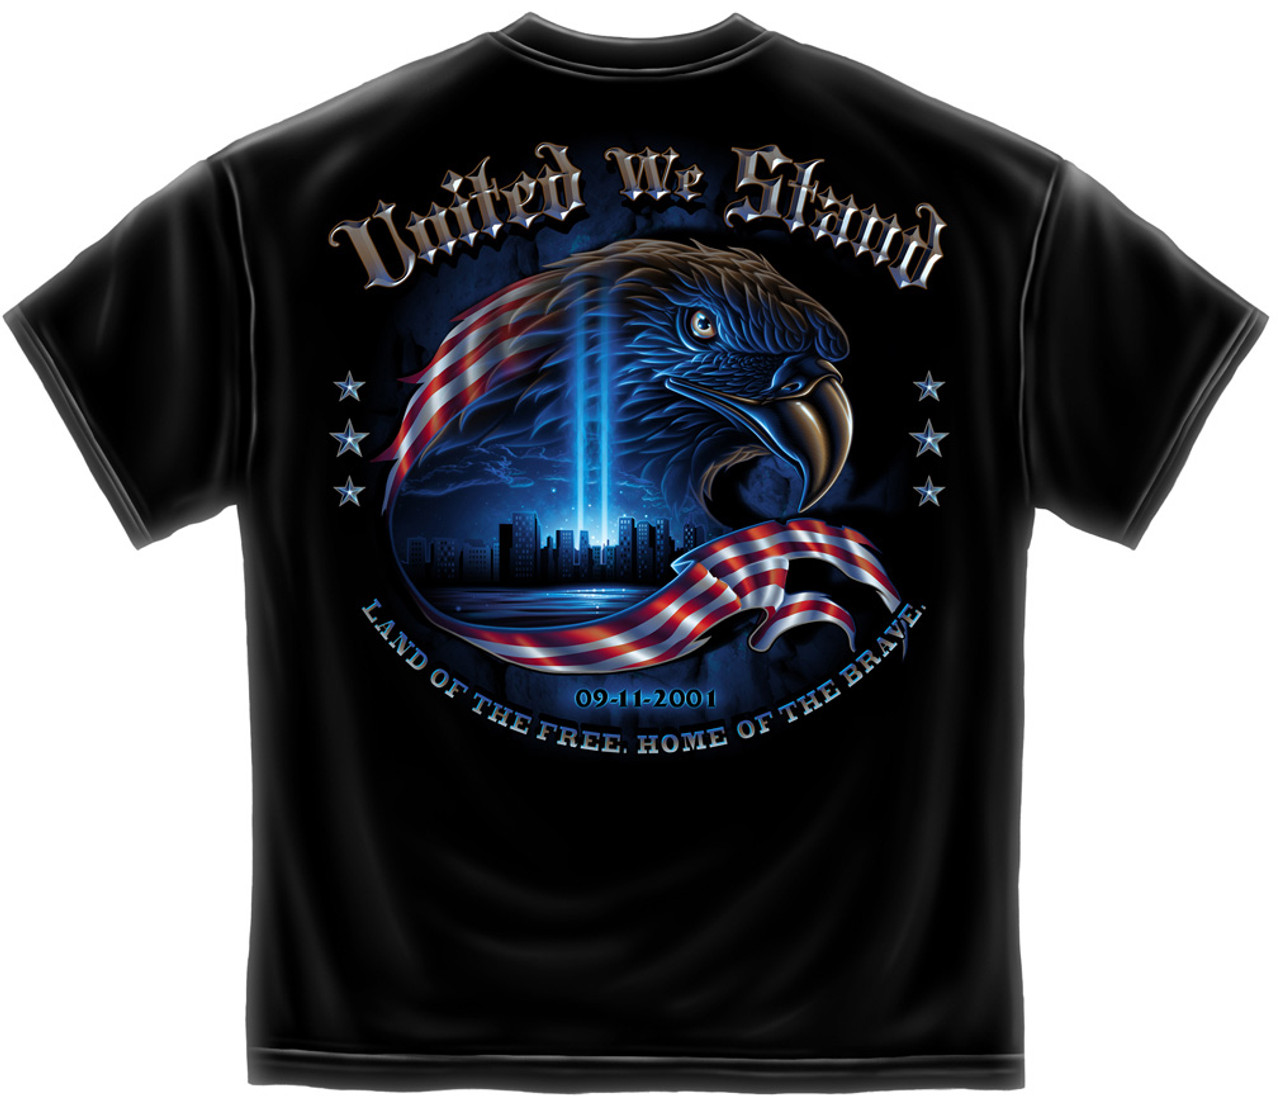 **(PROUDLY-VETERAN-OWNED,SELLING-HOT-GRAPHIC-LICENSED-PREMIUM-MILITARY-TEES,HATS,HOODIES & LICENSED-MILITARY-TACTICAL & HUNTING-KNIVES & HUNTING-TEES,HOT & TRENDY-CAMO-COMFORTER-BEDDING-SETS/FAUX-SHERPA-CAMO-BLANKETS;NEW-LICENSED-N.R.A. & HUNTING-TEES & HOODIES,OFFICIAL-NFL & MLB-TEES & HOODIES,NOW-OFFERING-OVER>500+PREMIUM-GRAPHIC-PRINTED-TEES,HATS & HOODIE-DESIGNS;SO-NOW-VIEW,SHOP & ORDER-ALL-ONLINE-AT)**(www.teeshirtshack.storenvy.com) & (www.storenvy.com/stores/293779-tee-shirt-shack-trends)